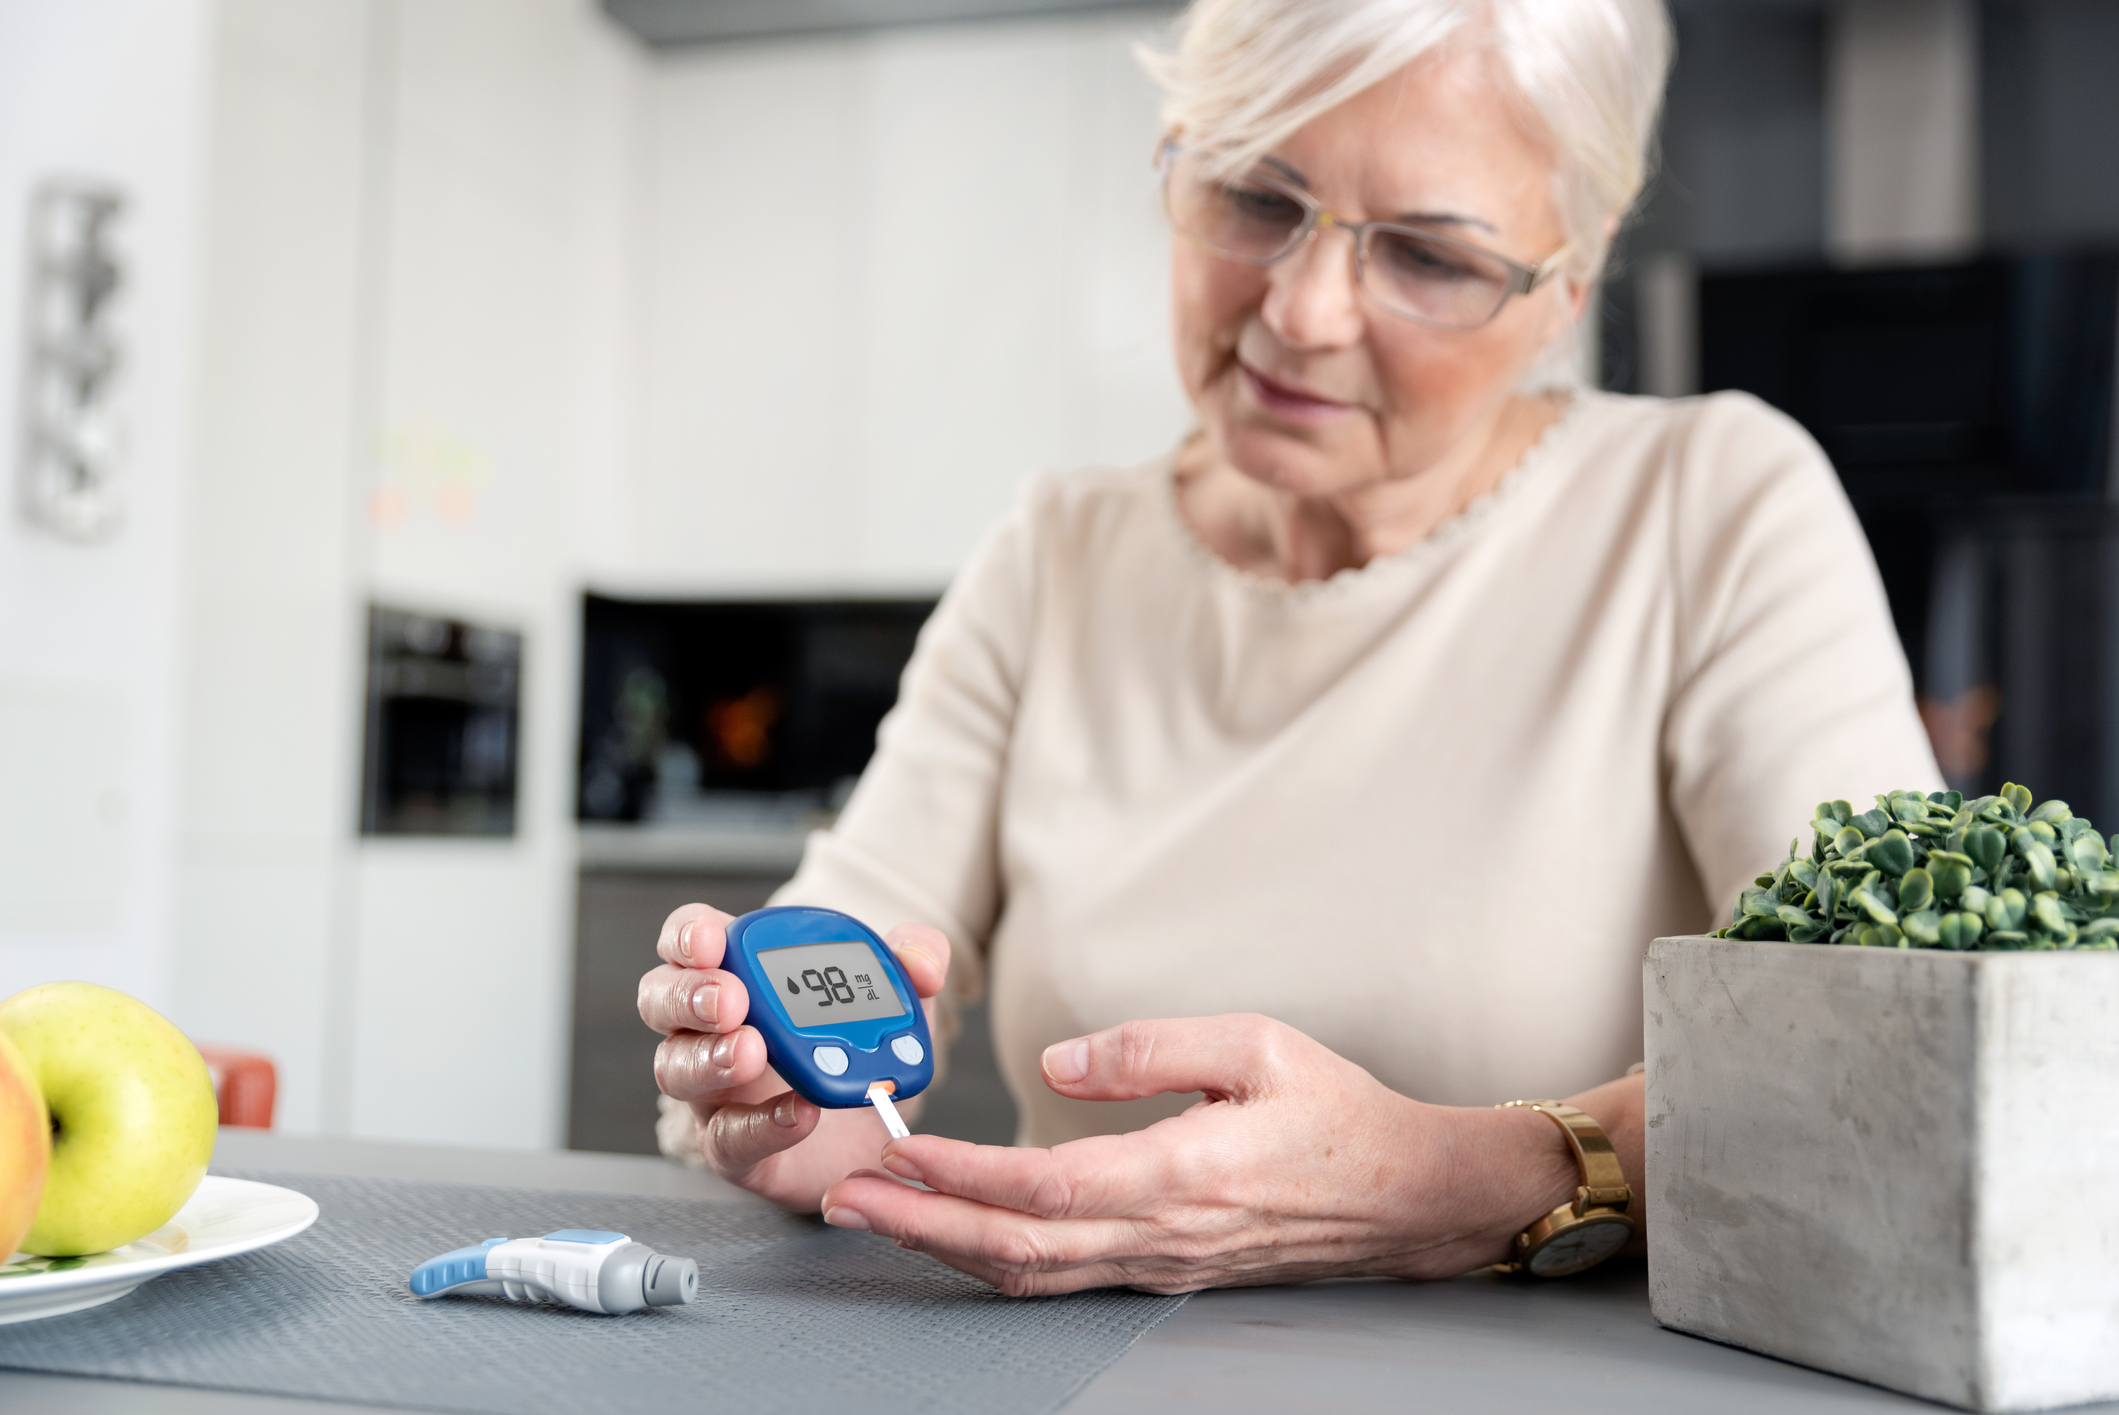 Why Diabetes is a Prime Opportunity for Connected Health